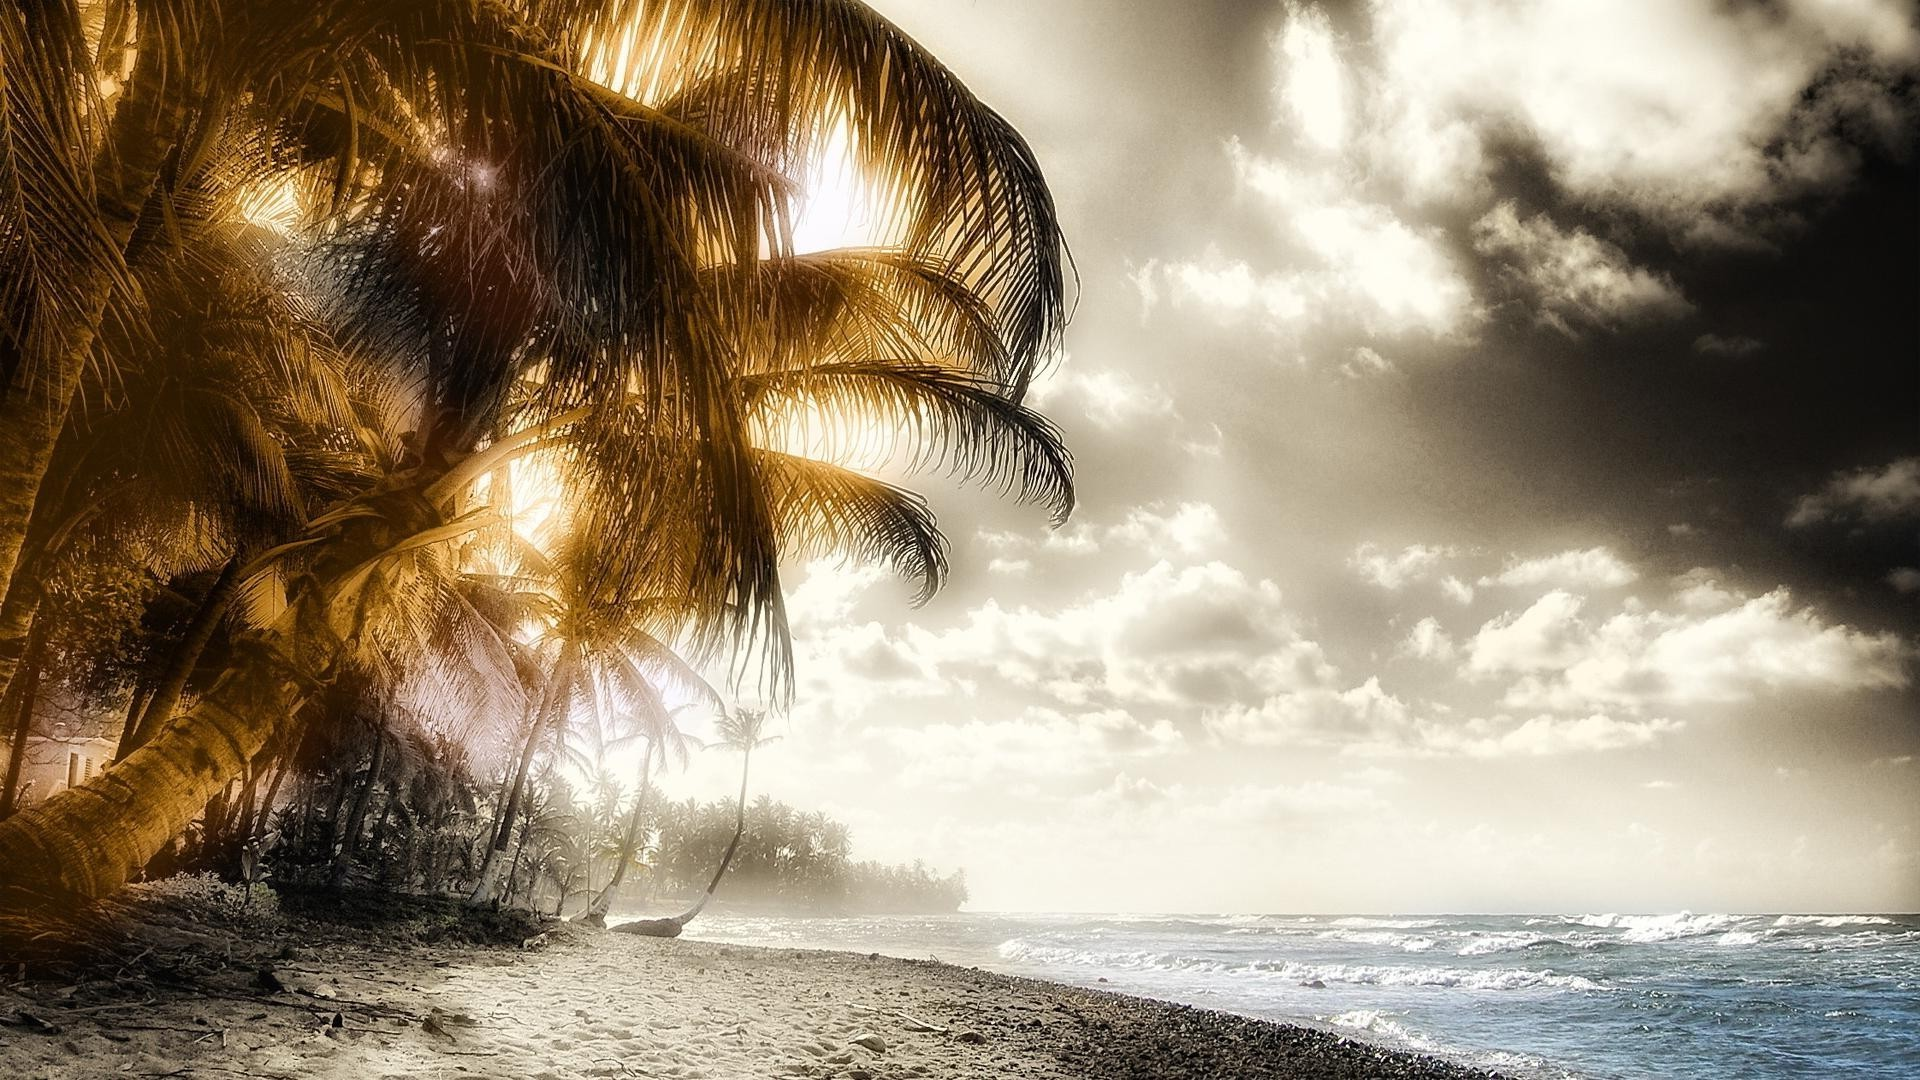 Ocean, island,palm trees, sun closed by clouds